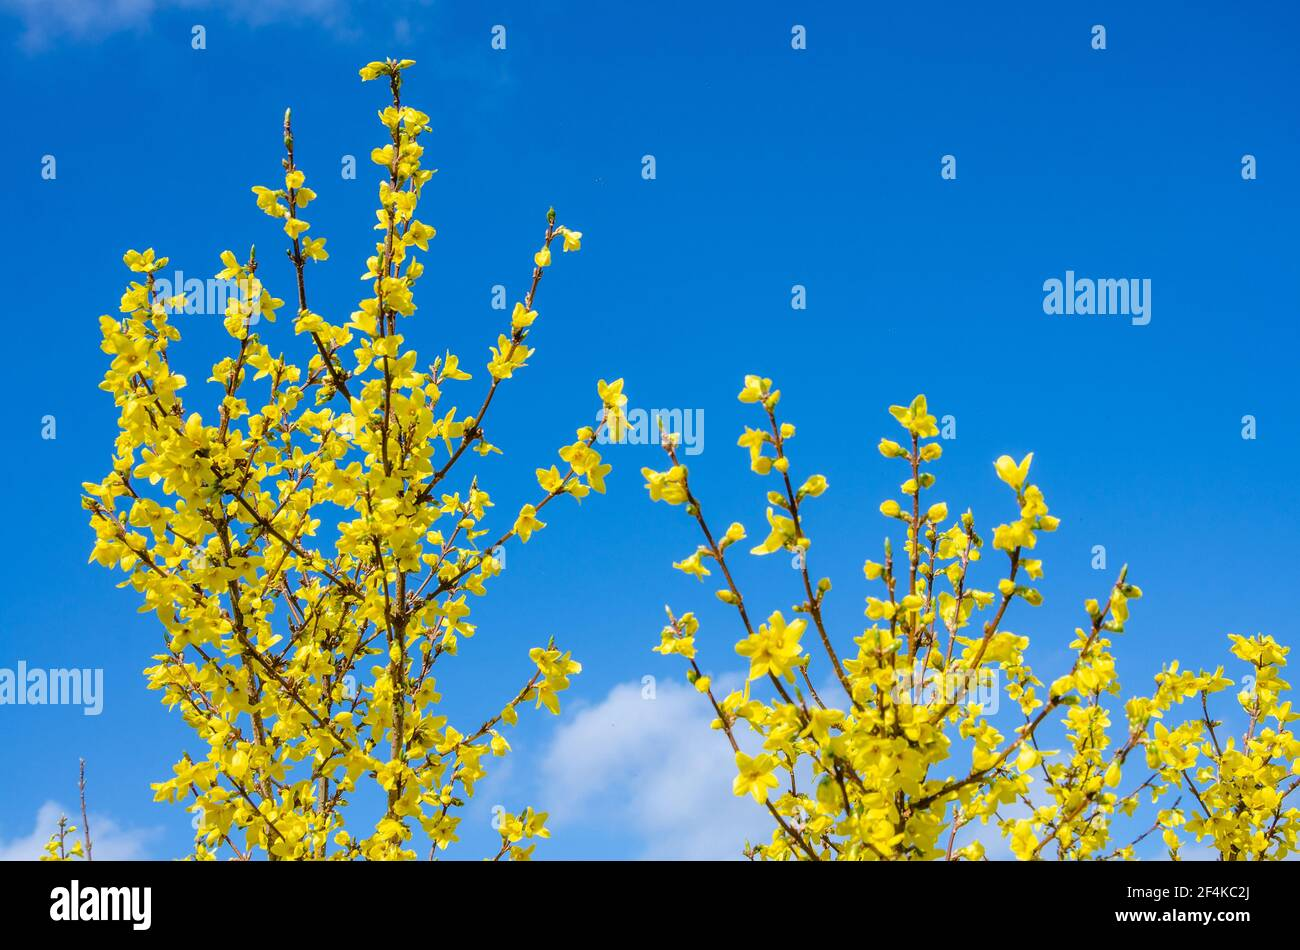 looking-up-at-yellow-forsythia-flowers-against-a-blue-sky-2F4KC2J.jpg